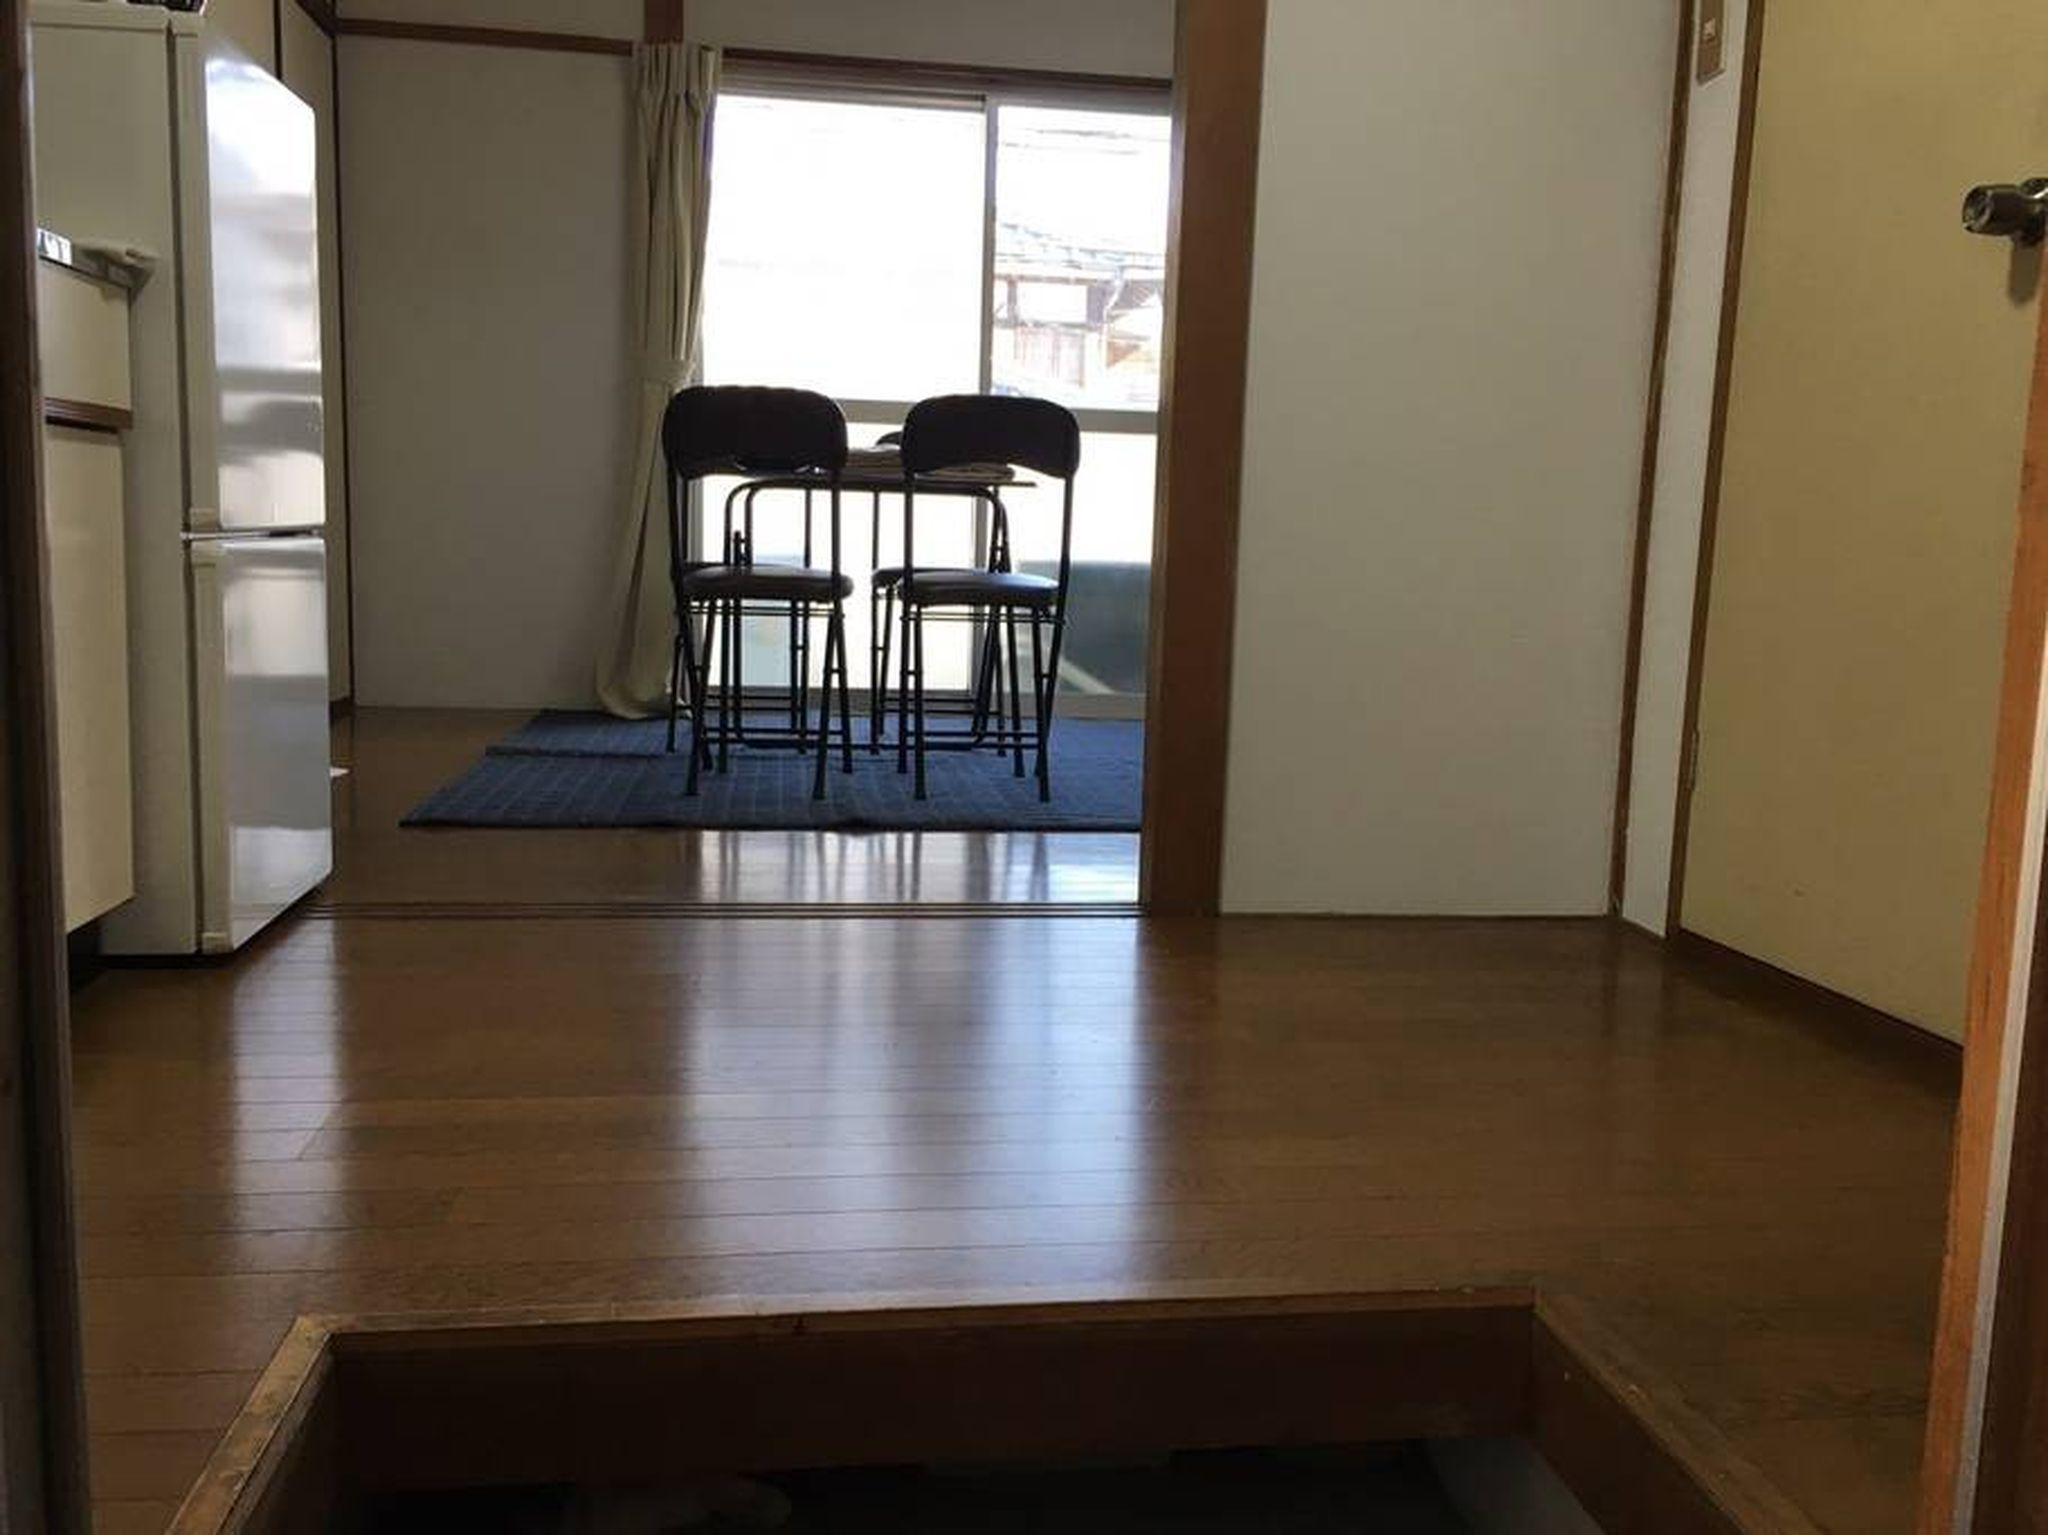 1 Japanese Style Room With Kitchen And Bathroom 2203